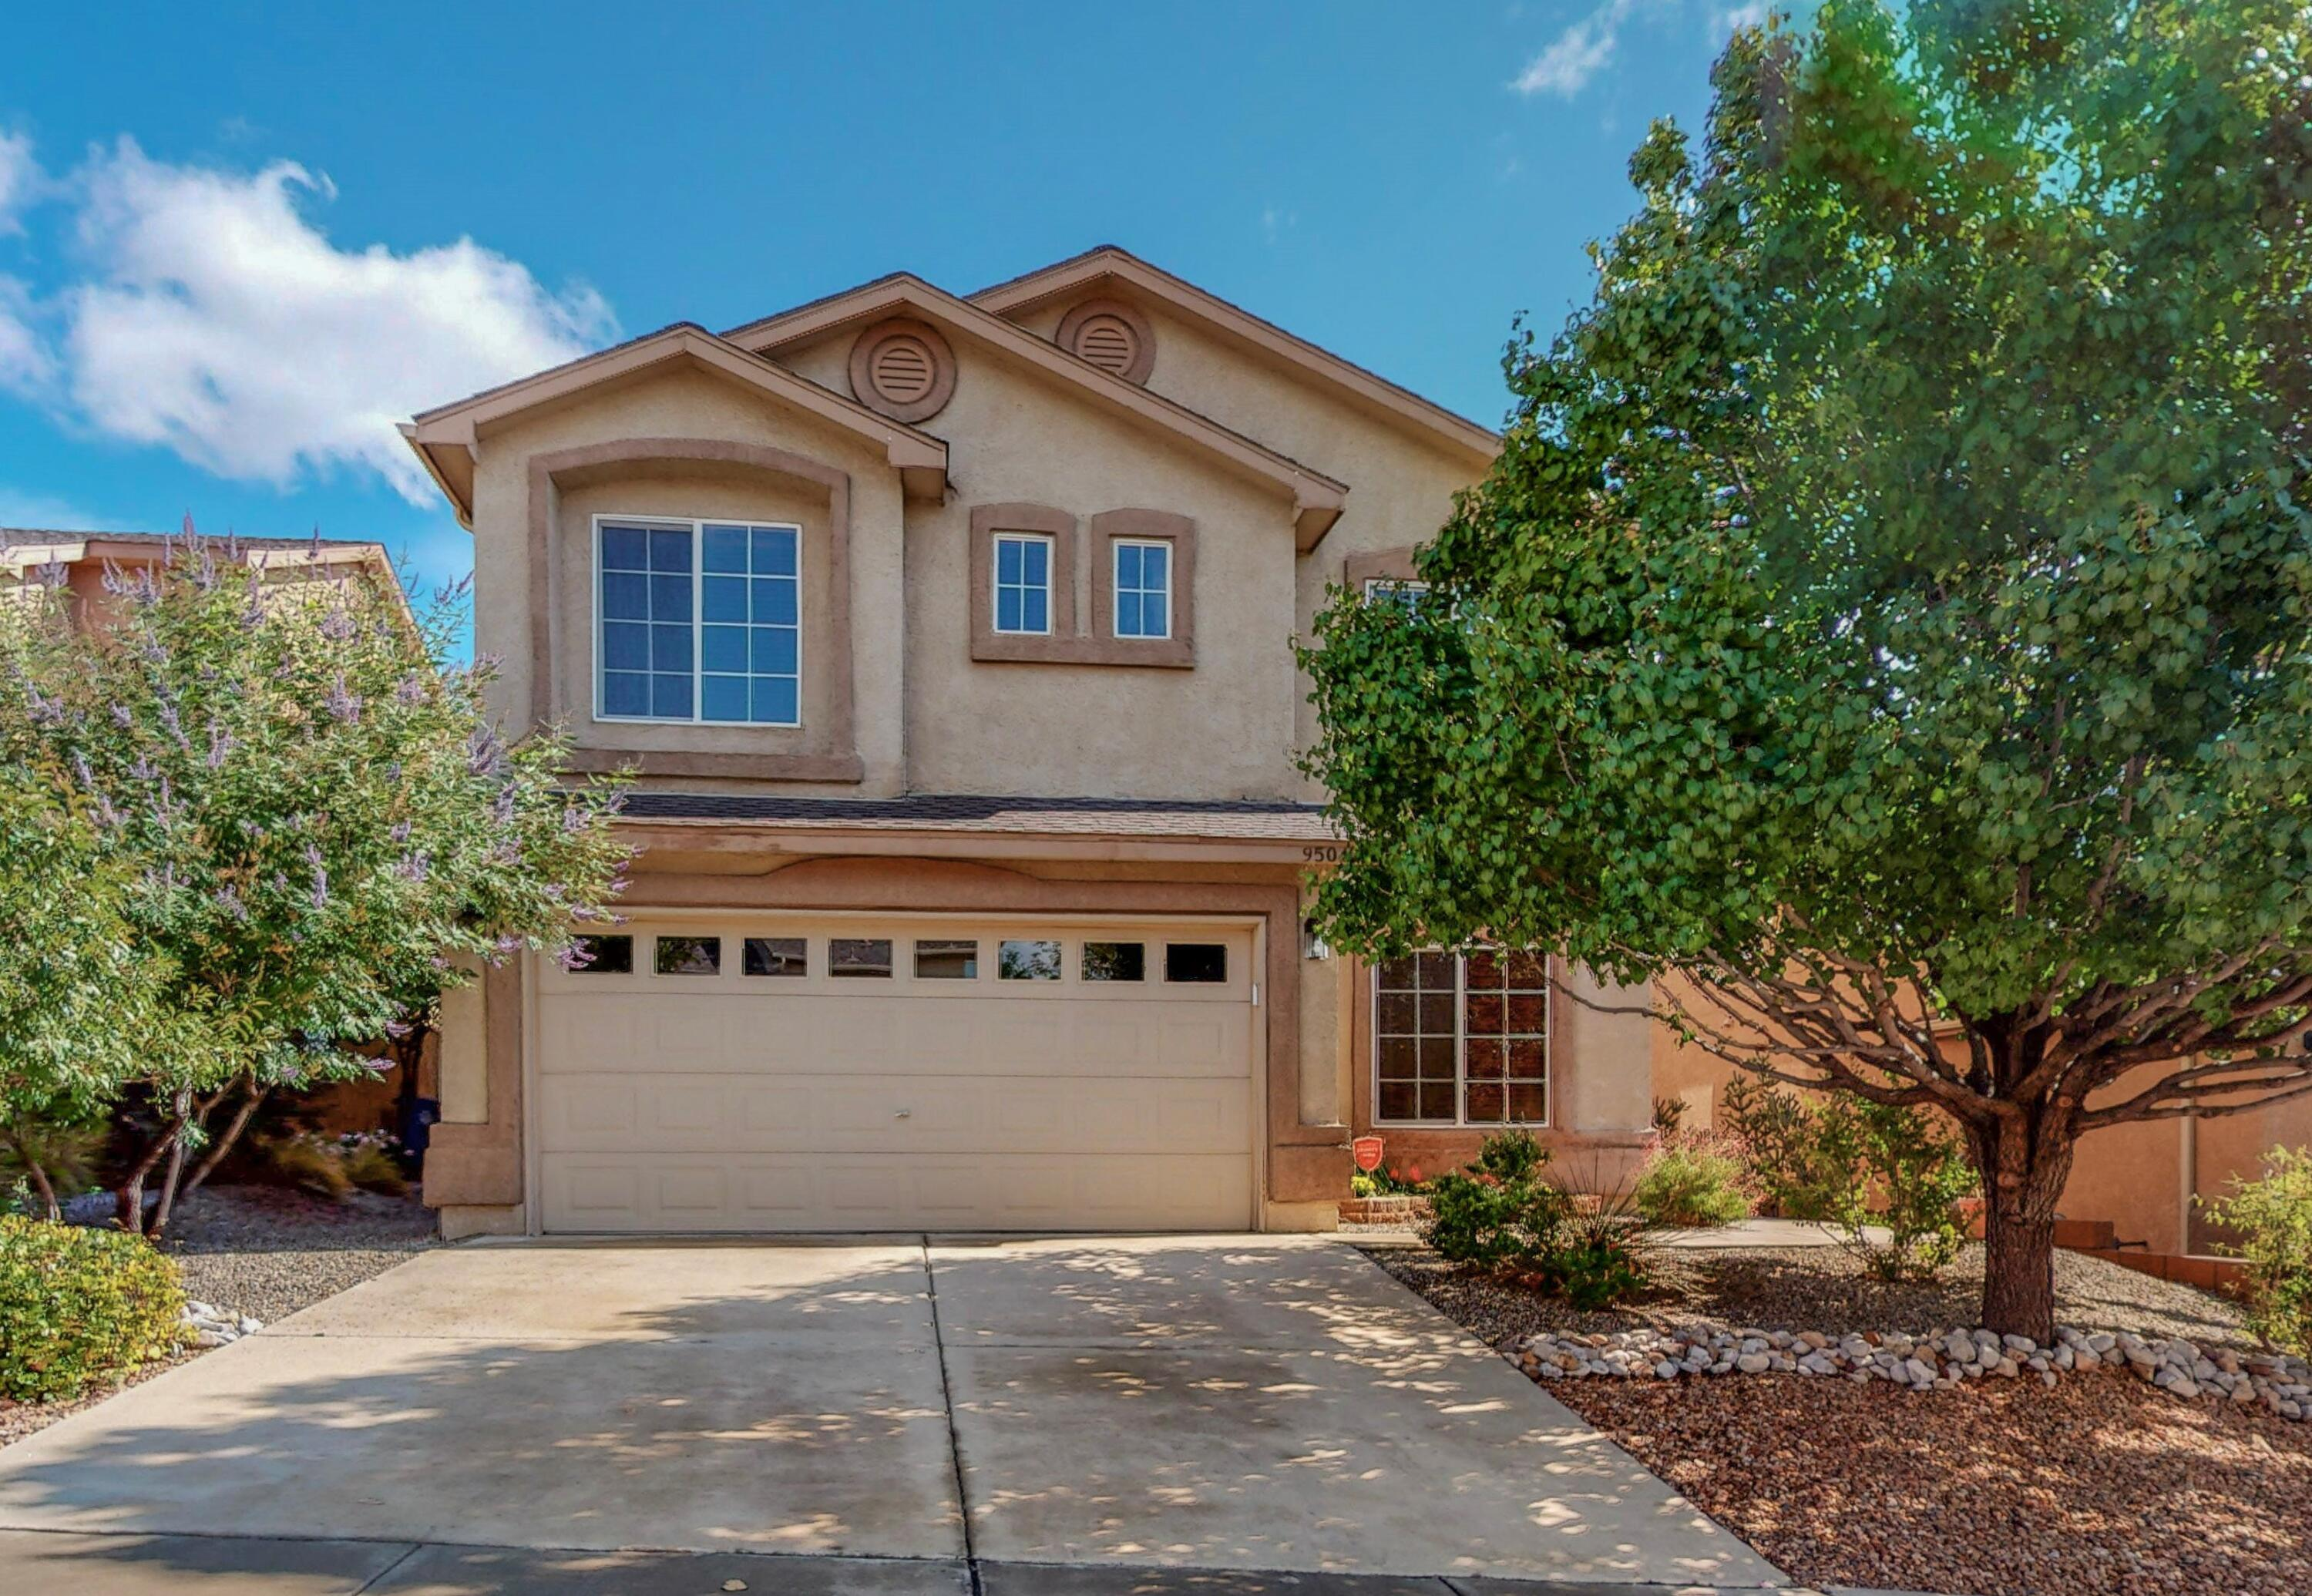 Enjoy breathtaking panoramic million dollar mountain and city views while relaxing in your back yard or upper deck. Light bright airy floor plan. Plenty of storage to keep neat & organized. Stylish foyer with tile medallion. Main level bonus office/room with French Doors. 3/4 bath quartz surface. Upstairs bathrooms have quartz surface! Bright cheerful kitchen includes kitchen bar with quartz countertops, plenty of storage & walk-in pantry! Nice size dining room with gorgeous views. Large master suite, high ceilings, more views, & romantic fireplace. Large loft! Immaculate condition inside and out! Recent updates include a dishwasher, Hot water heater, garage opener & kitchen faucet! Private backyard includes turf, flower bed & water fountain.  Everything on auto drip. This home is a gem!